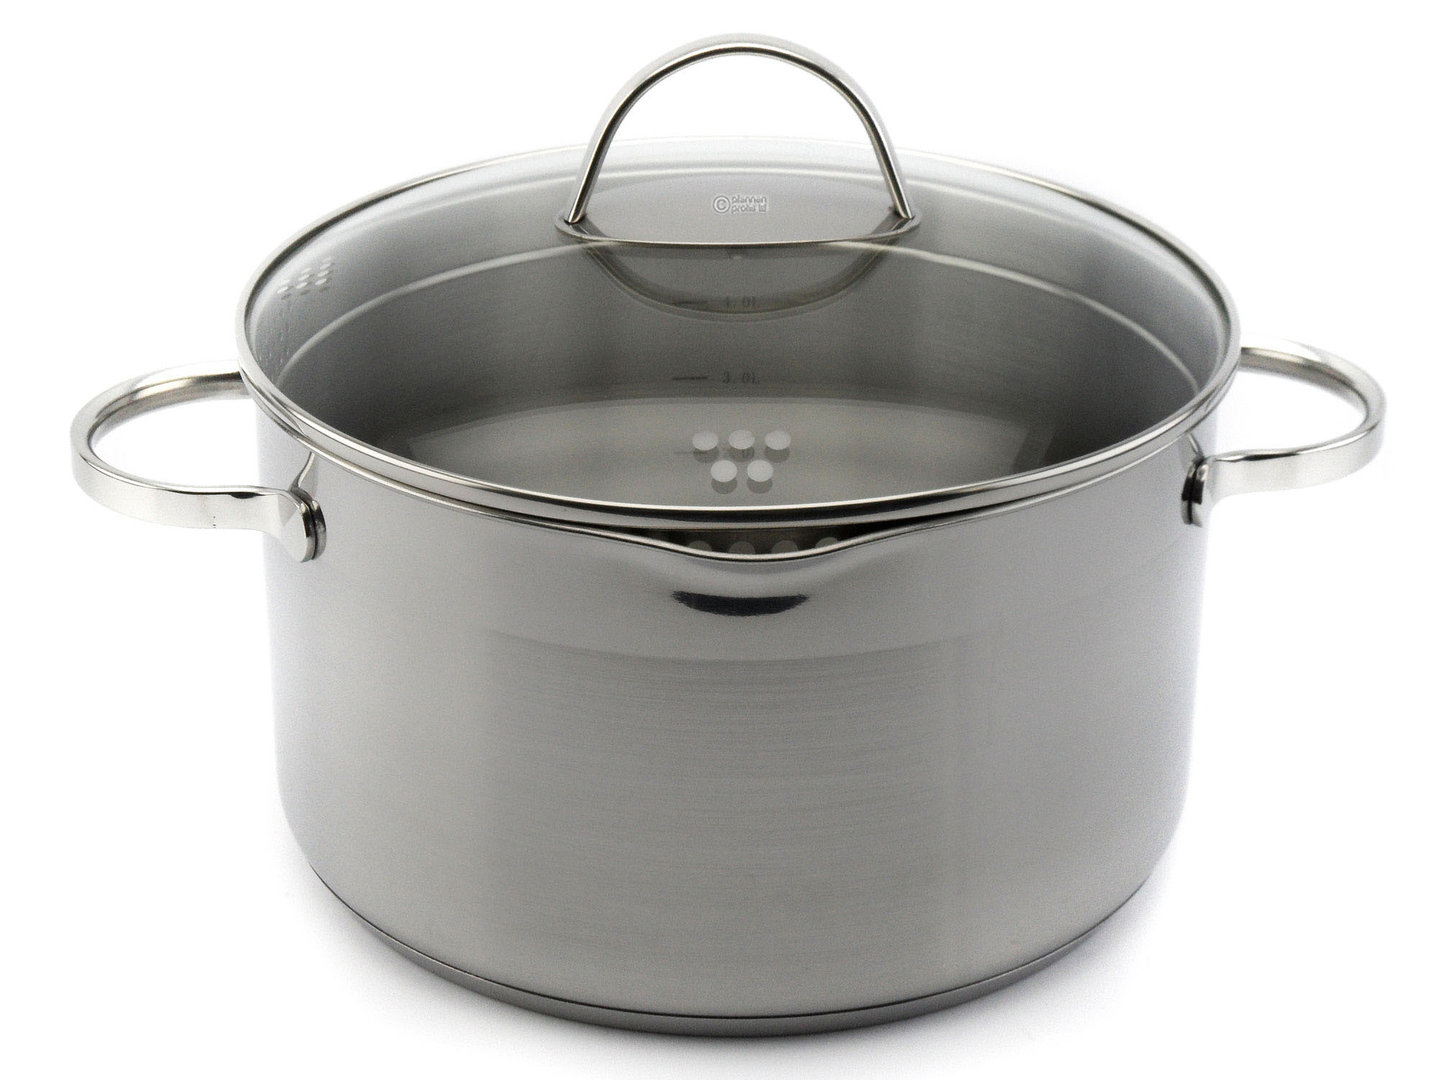 SSW easy straining casserole COMFORT 24 cm stainless steel induction